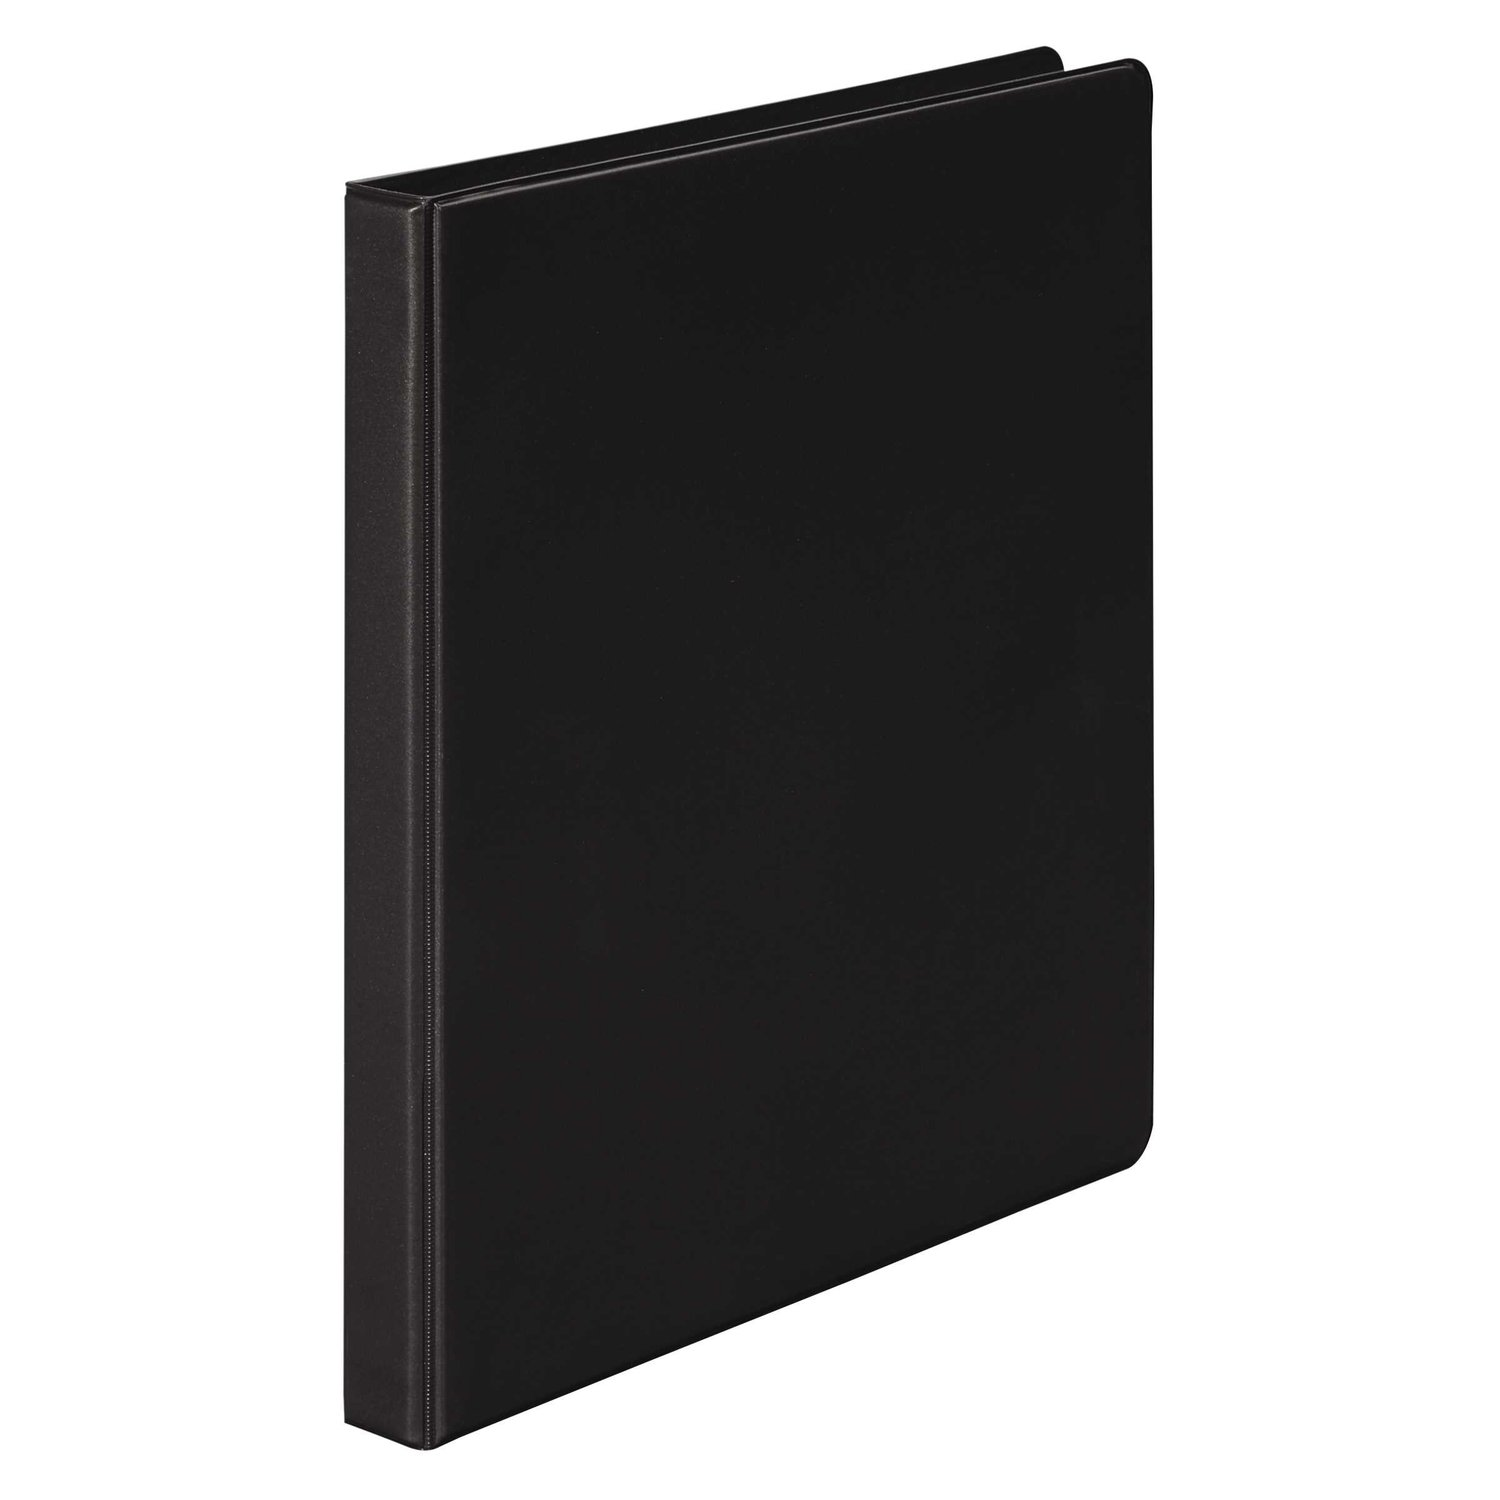 Amazon.com : Wilson Jones Round Ring Binder, 368, Basic, 1/2 Inch ...